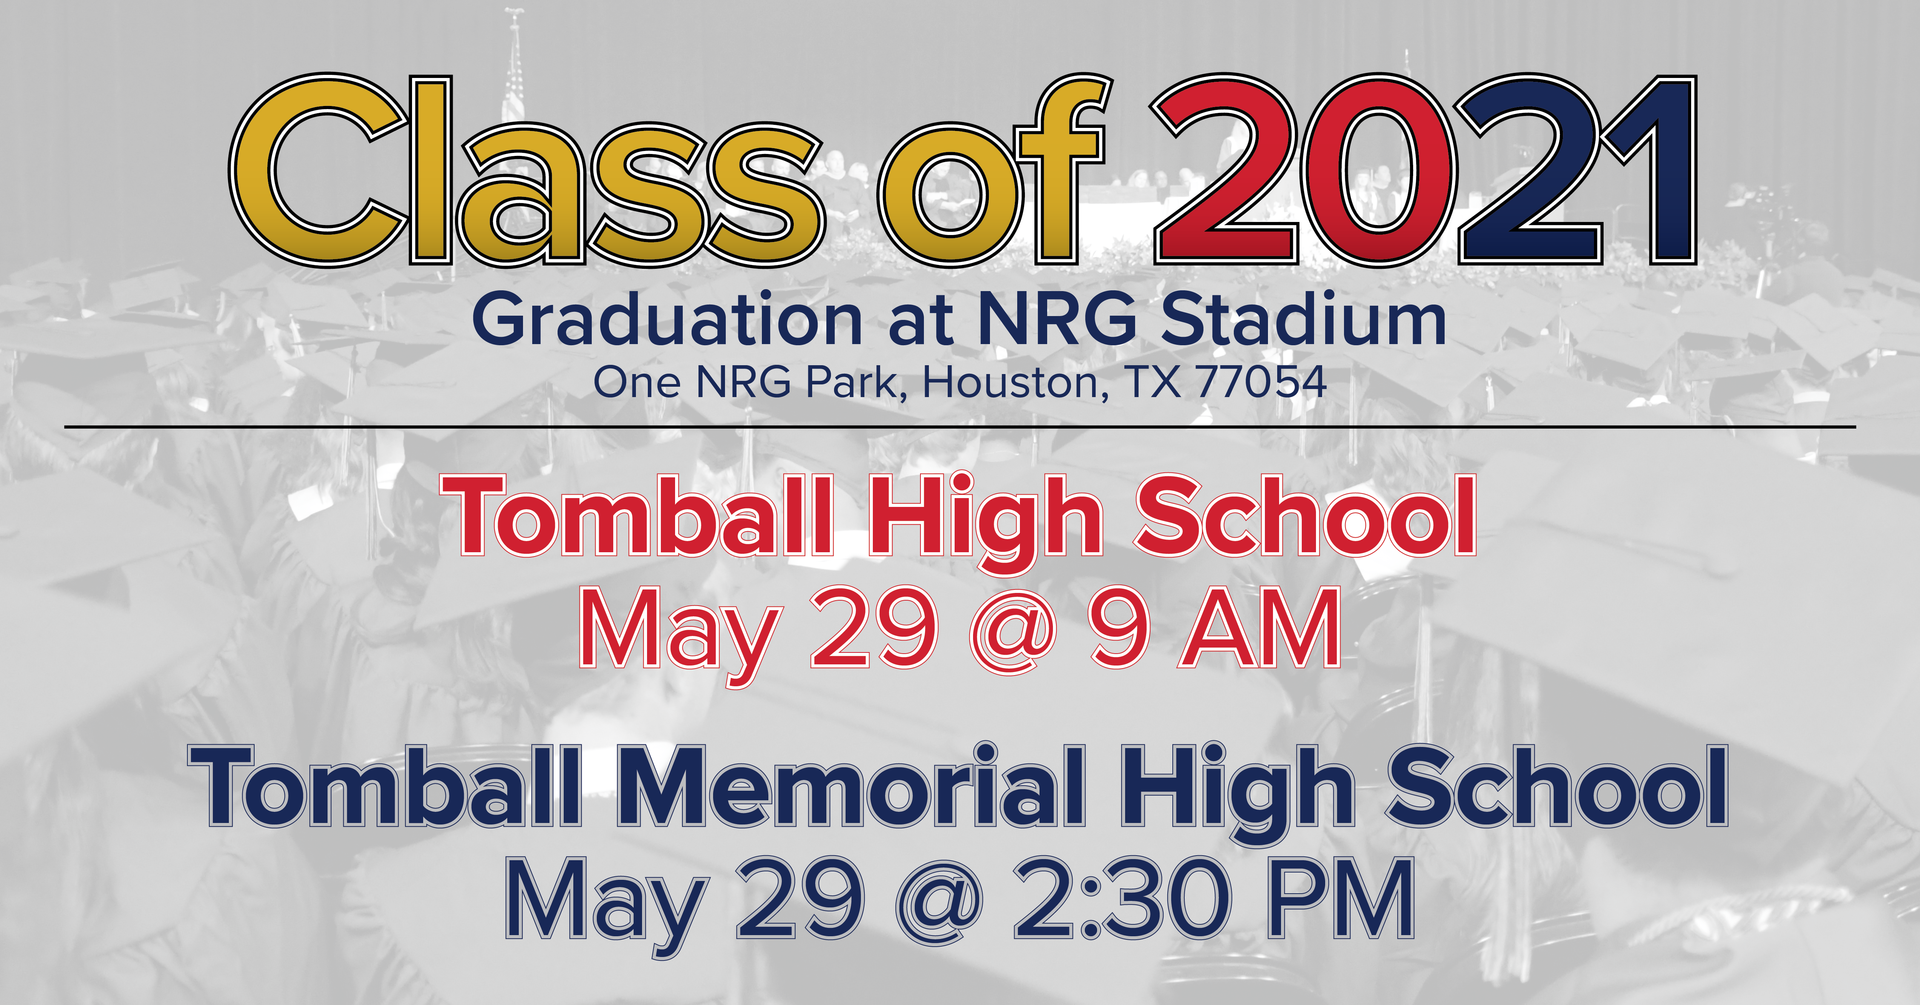 Class of 2021, Graduation at NRG Stadium - One NRG Park, Houston, TX 77054. Tomball High School May 29 @ 9 AM, Tomball Memorial High School May 29 @ 2:30 PM